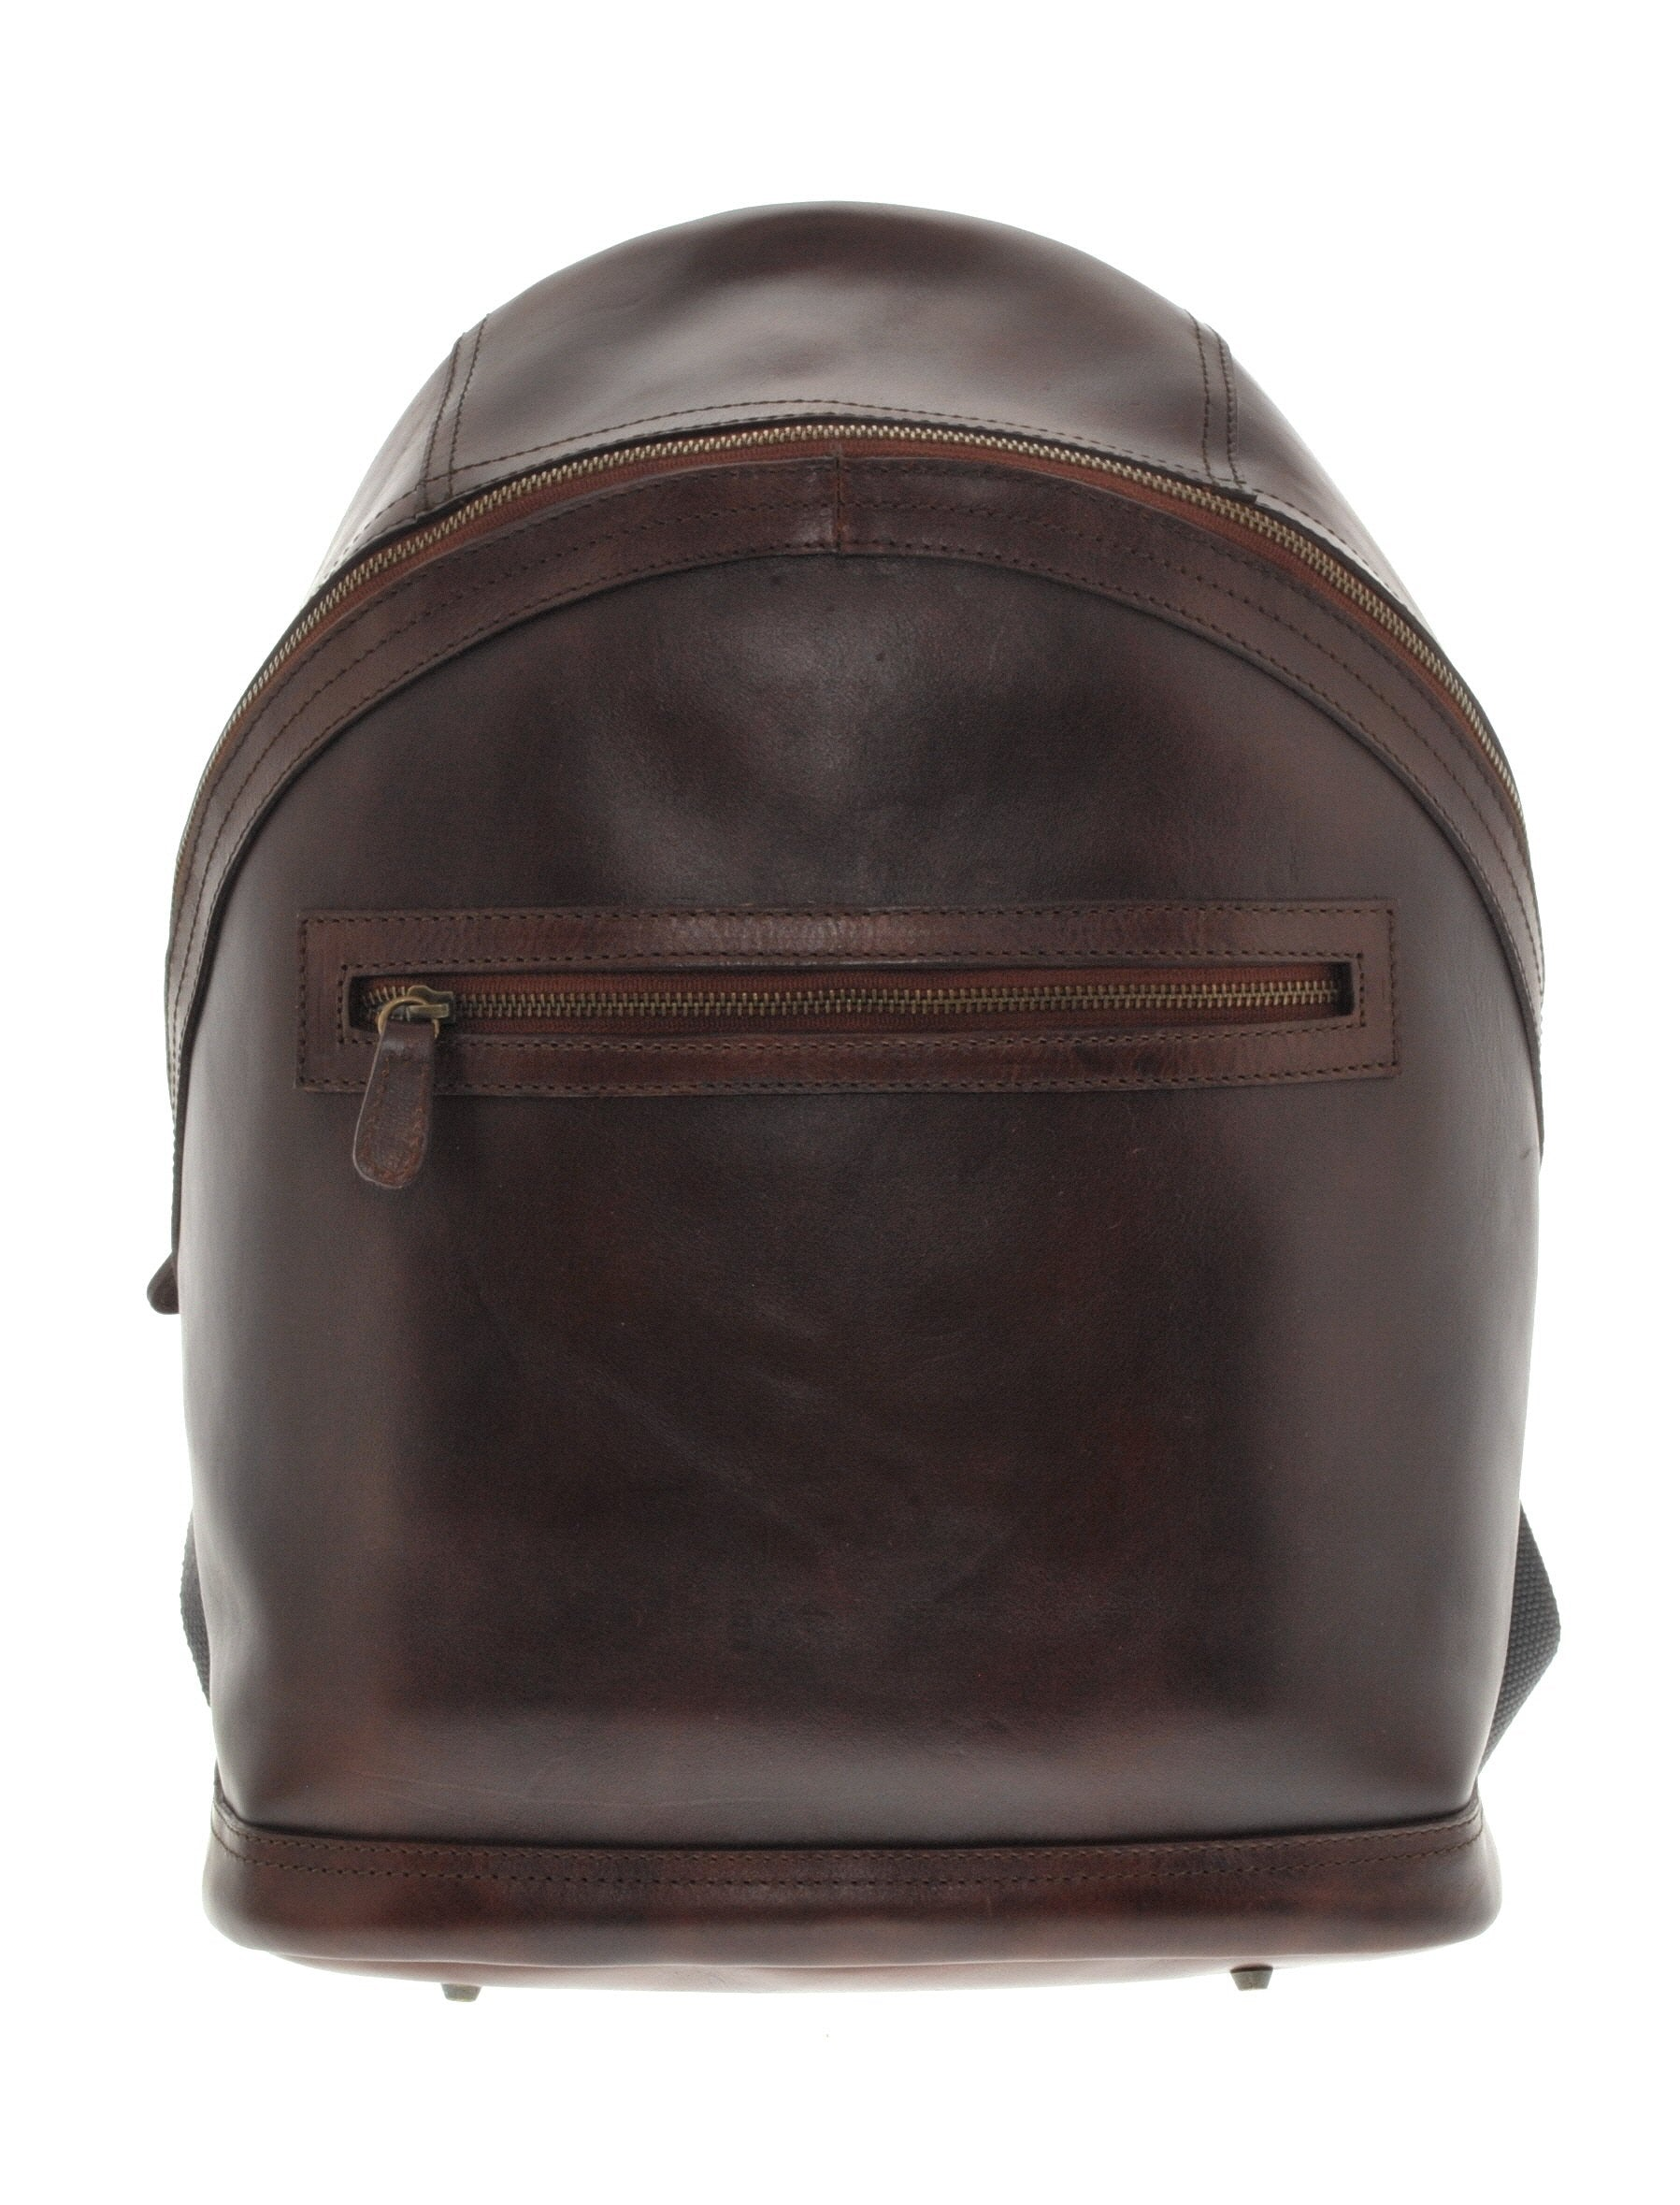 Leather Backpack - Brown - LeatherLately